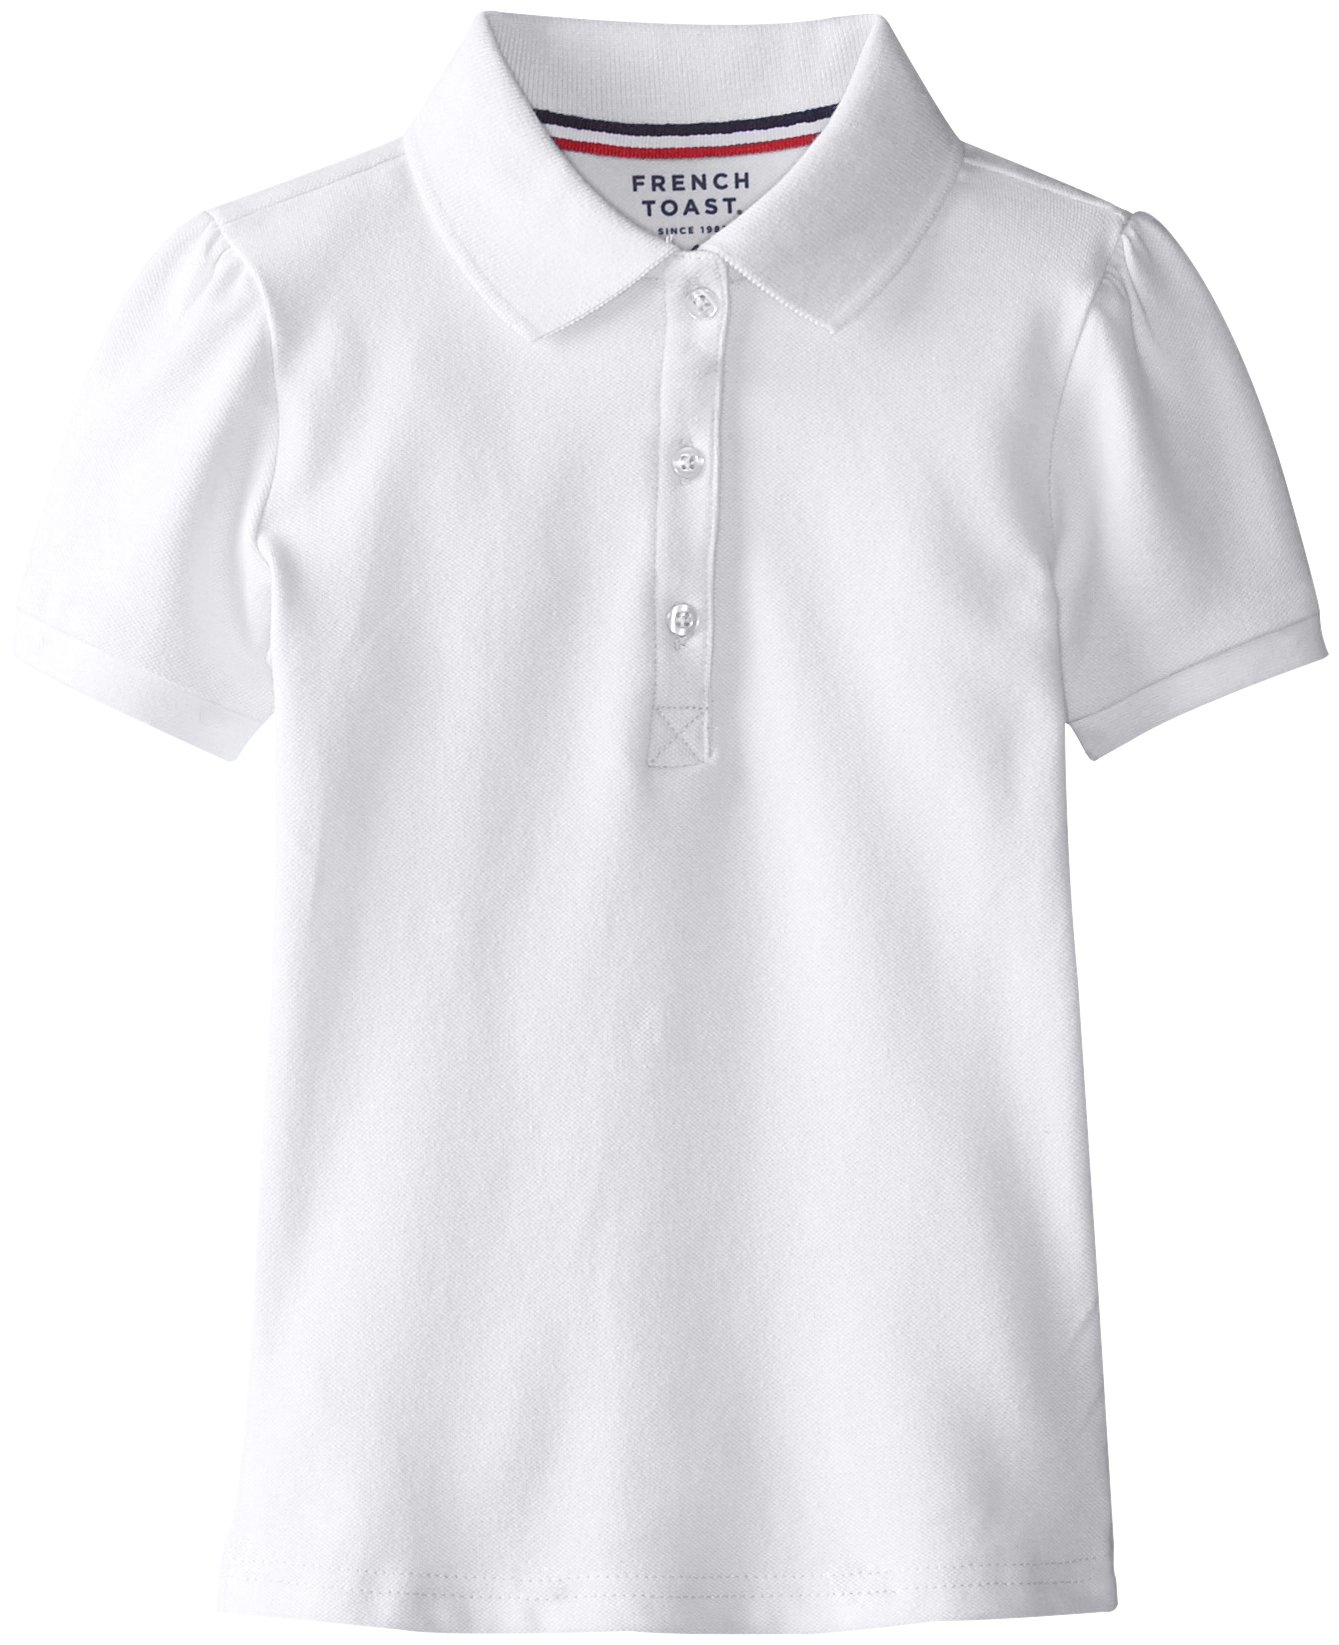 French Toast Little Girls' Short Sleeve Stretch Pique Polo, White, 4